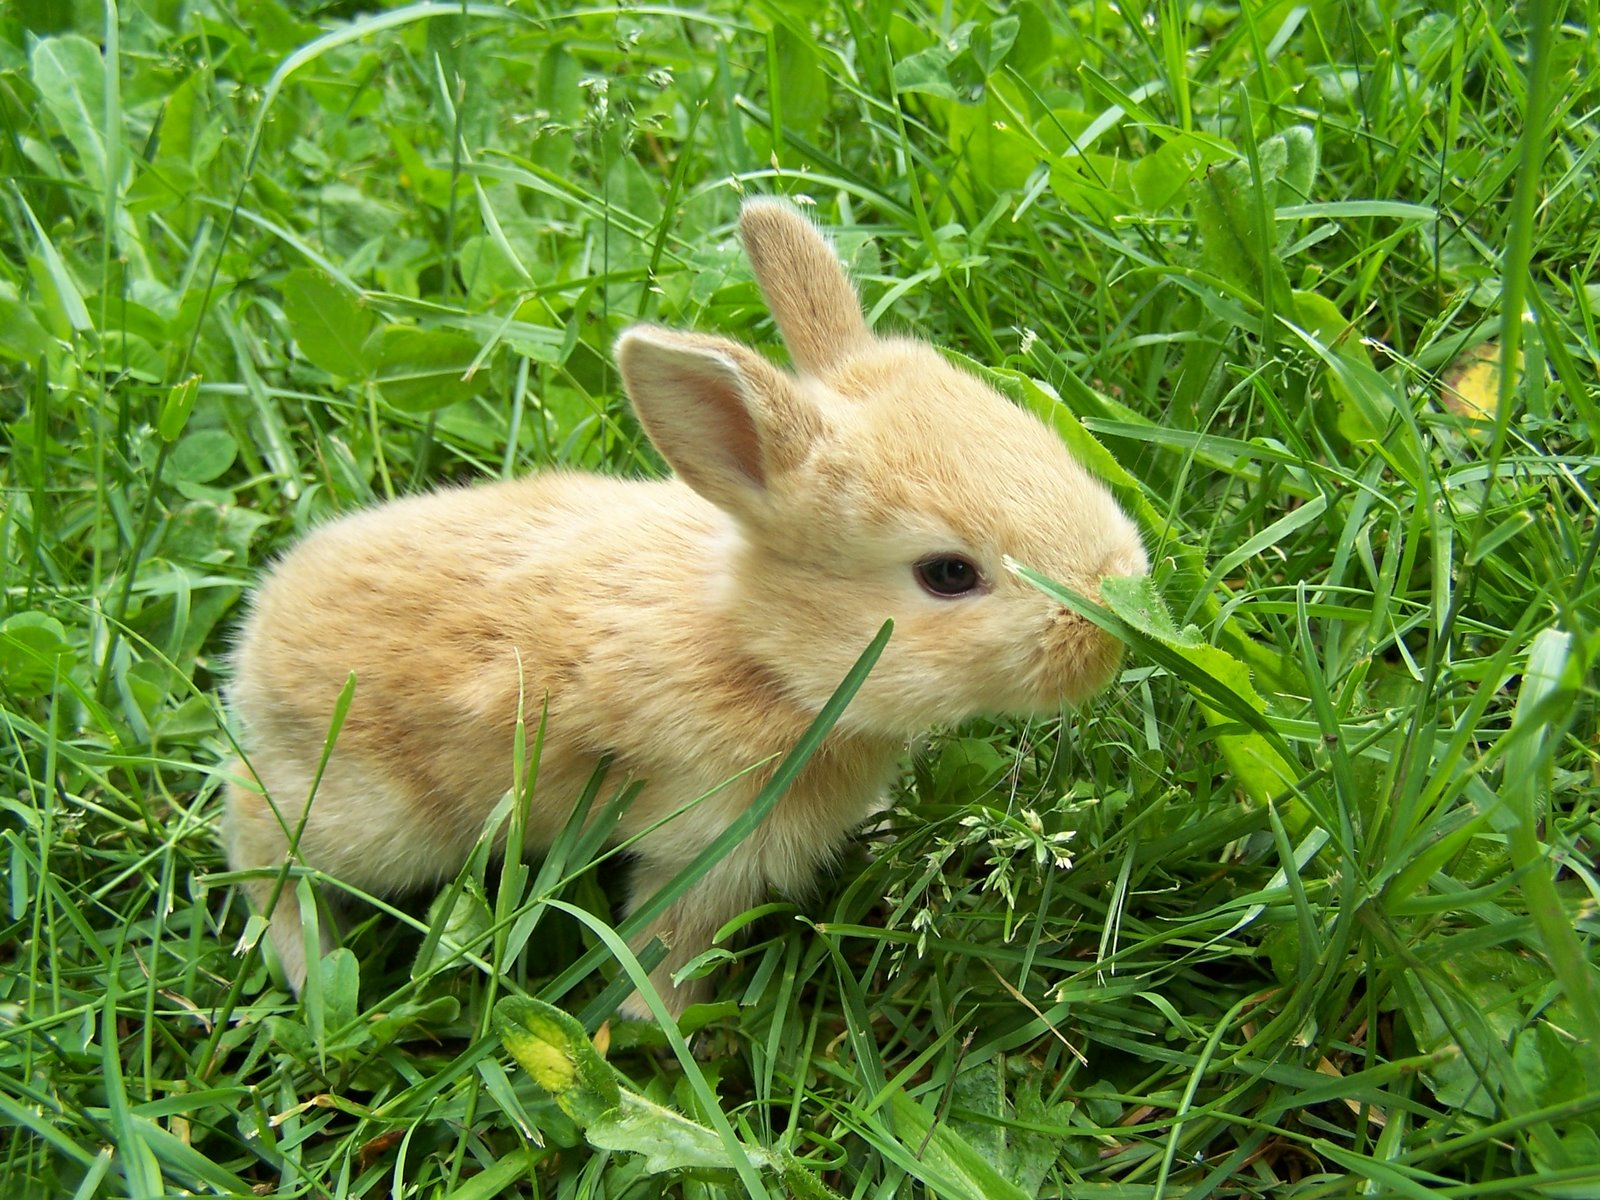 Cute little rabbits hd wallpapers